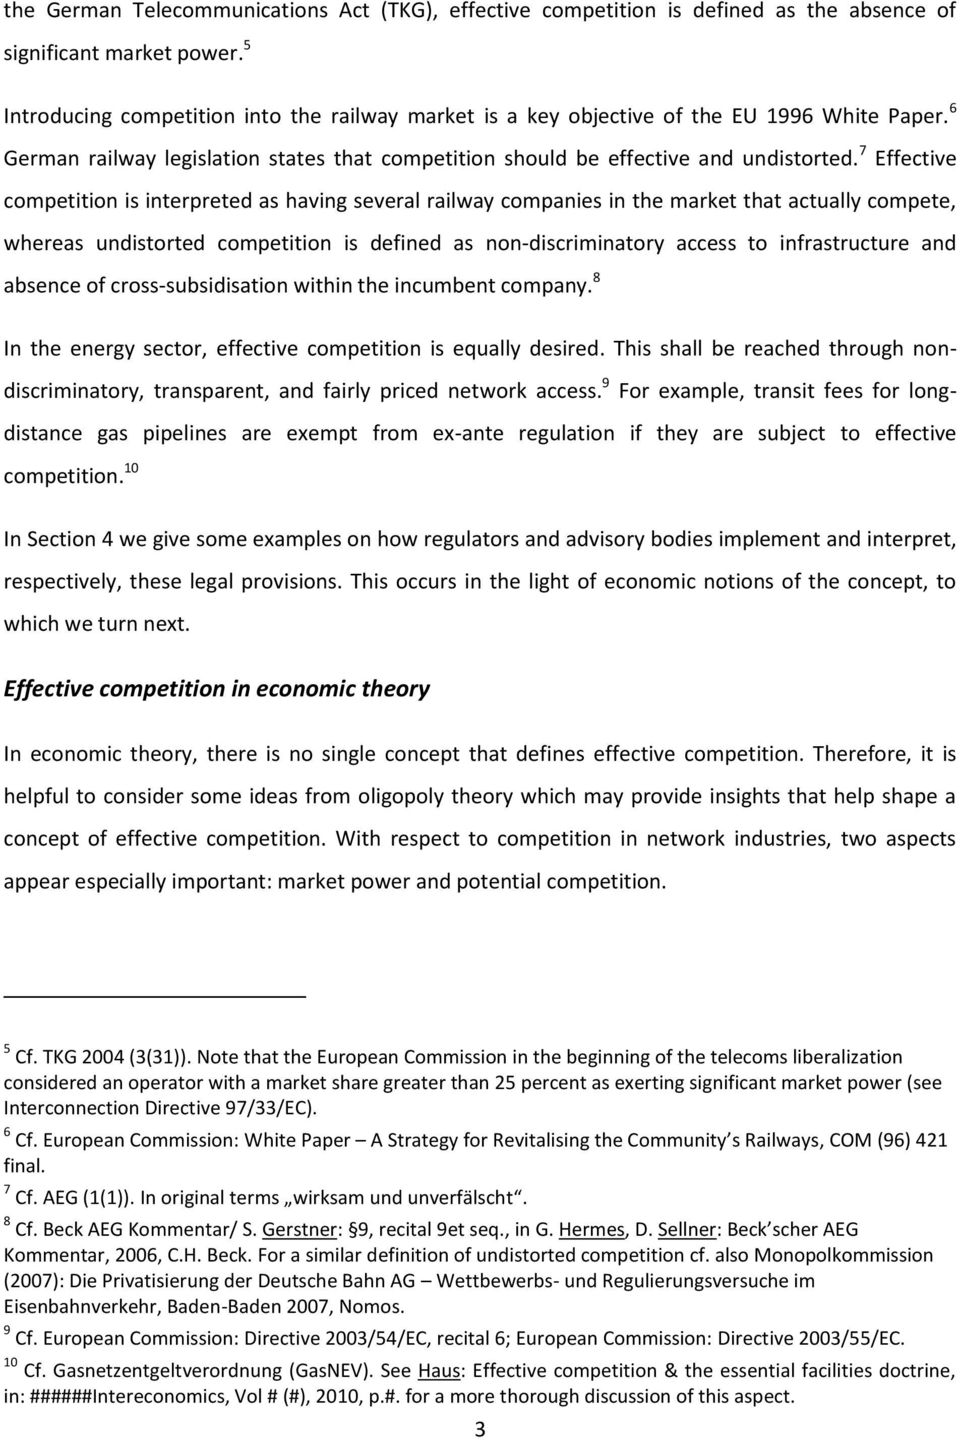 7 Effective competition is interpreted as having several railway companies in the market that actually compete, whereas undistorted competition is defined as non-discriminatory access to